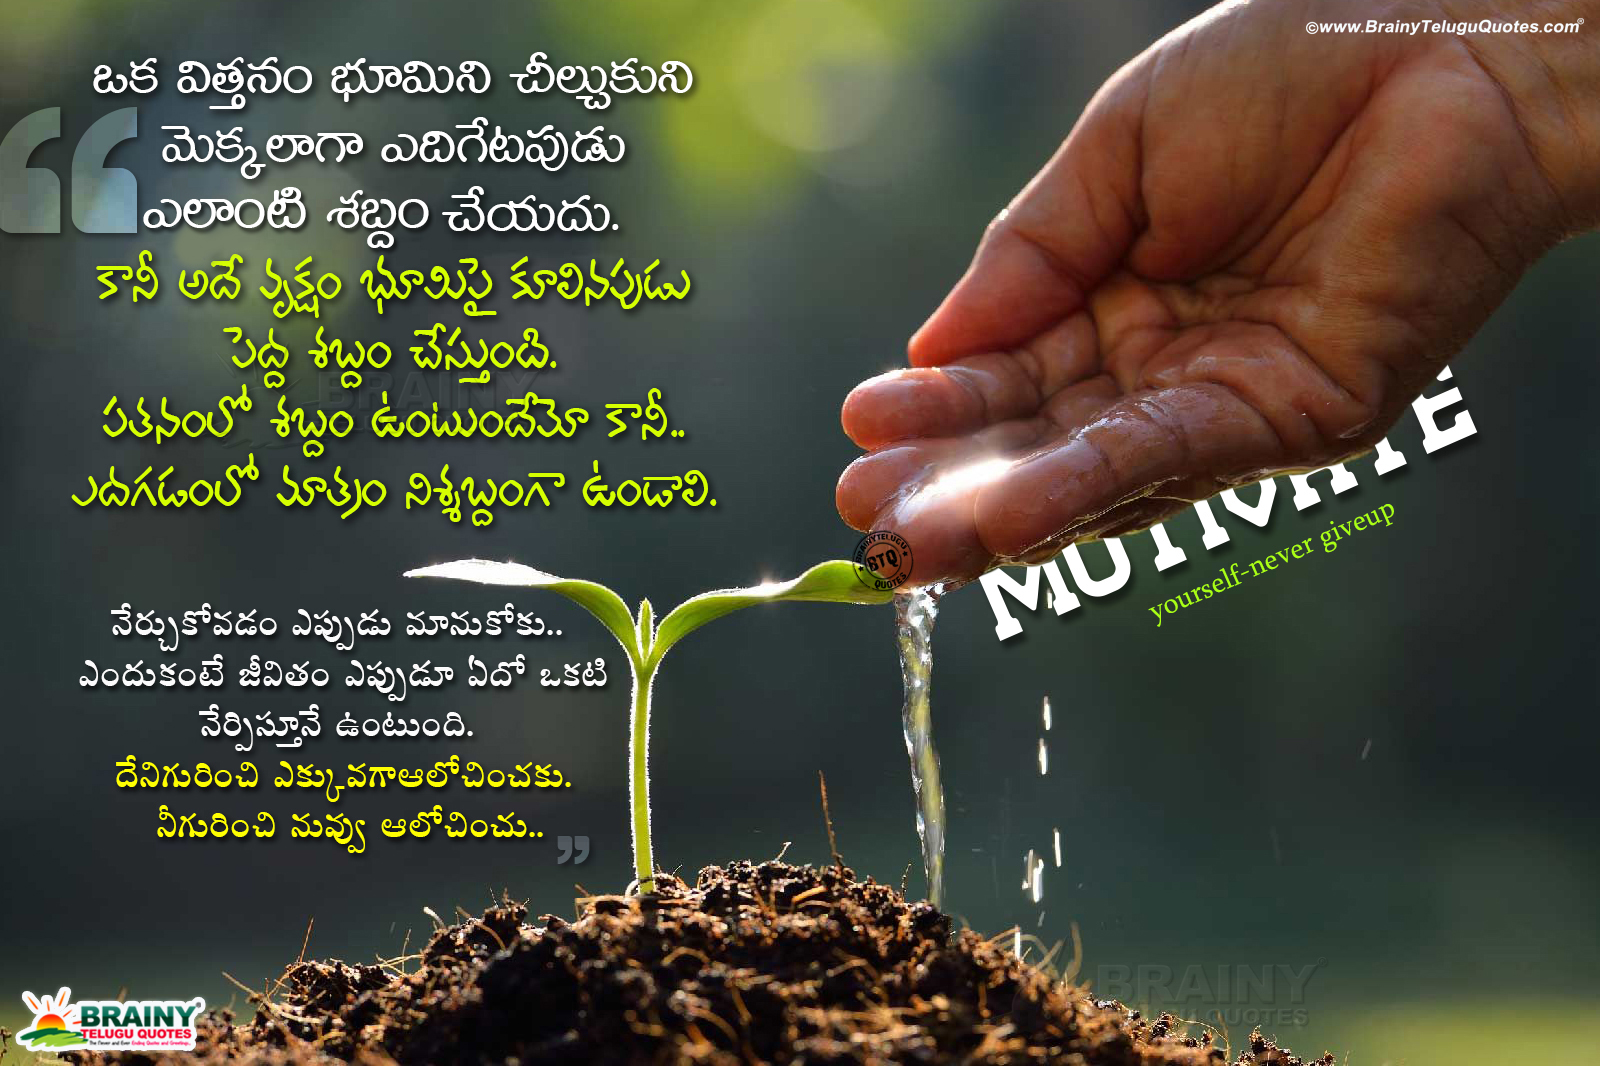 Inspiring Words On Life In Telugu Best Self Motivational Quotes In Telugu With Hd Wallpapers Brainyteluguquotes Comtelugu Quotes English Quotes Hindi Quotes Tamil Quotes Greetings